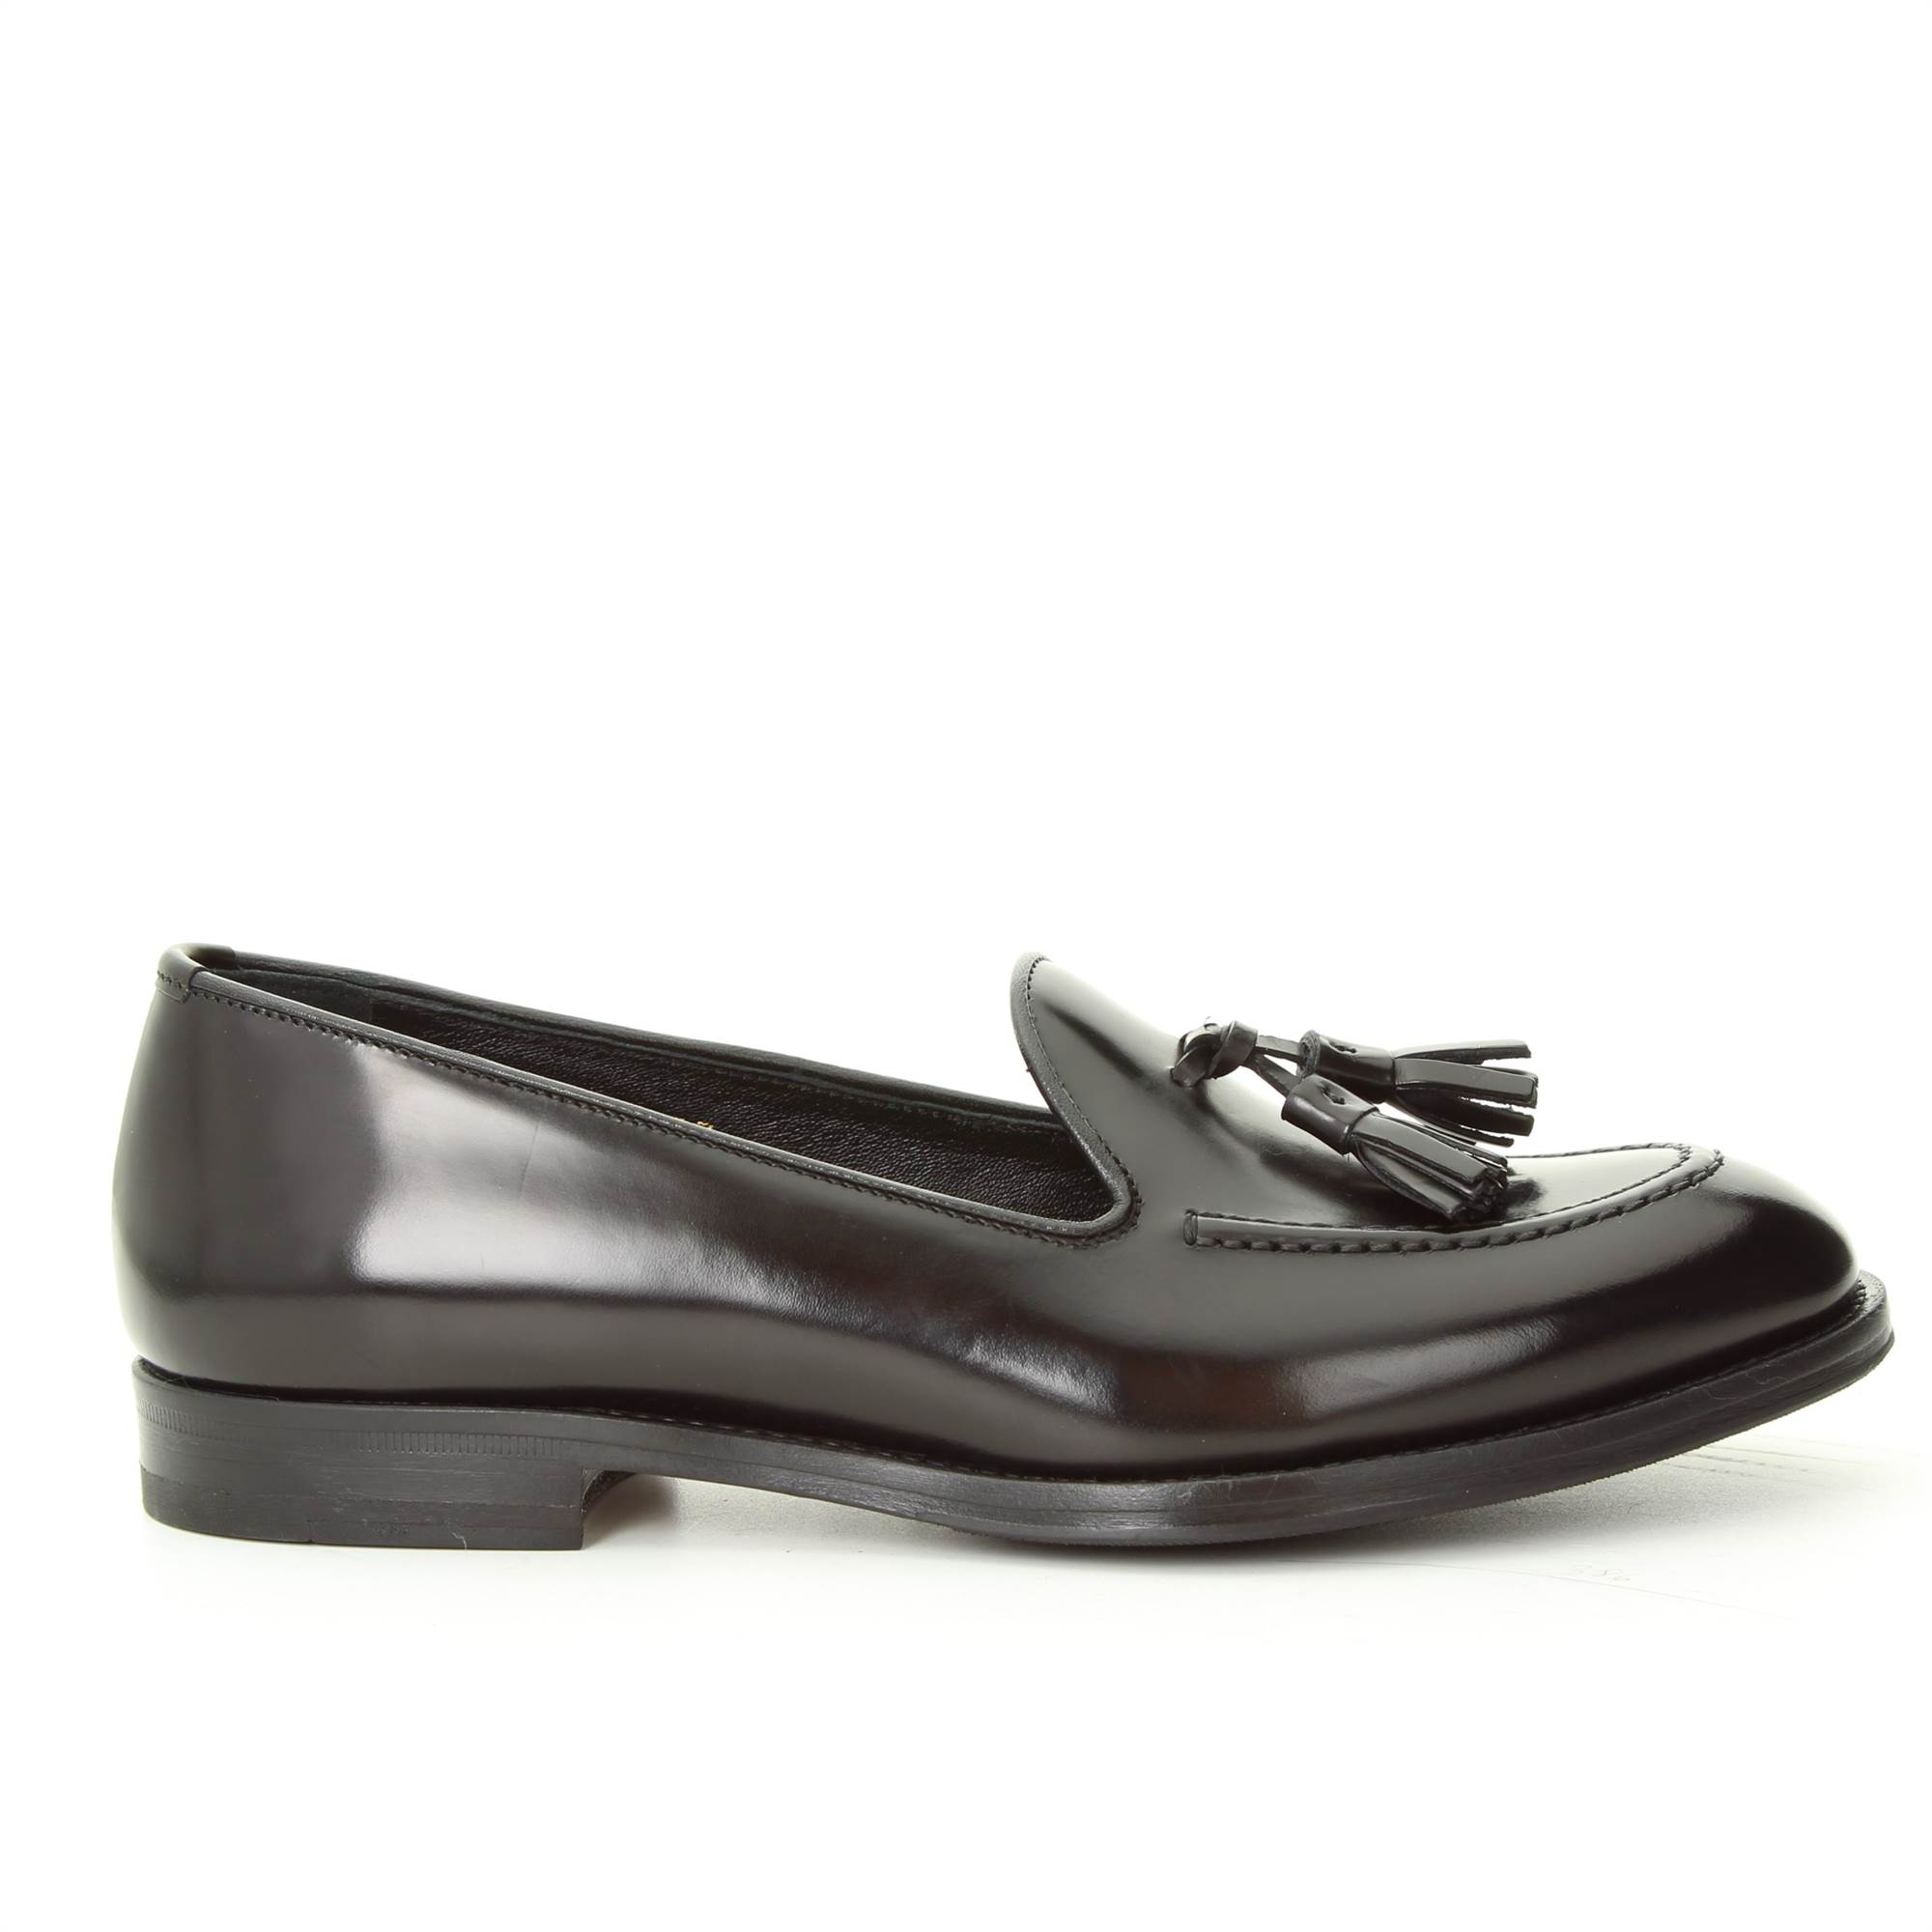 LANCIOTTI DE VERZI 704P NERO Shoes Woman tassel loafer